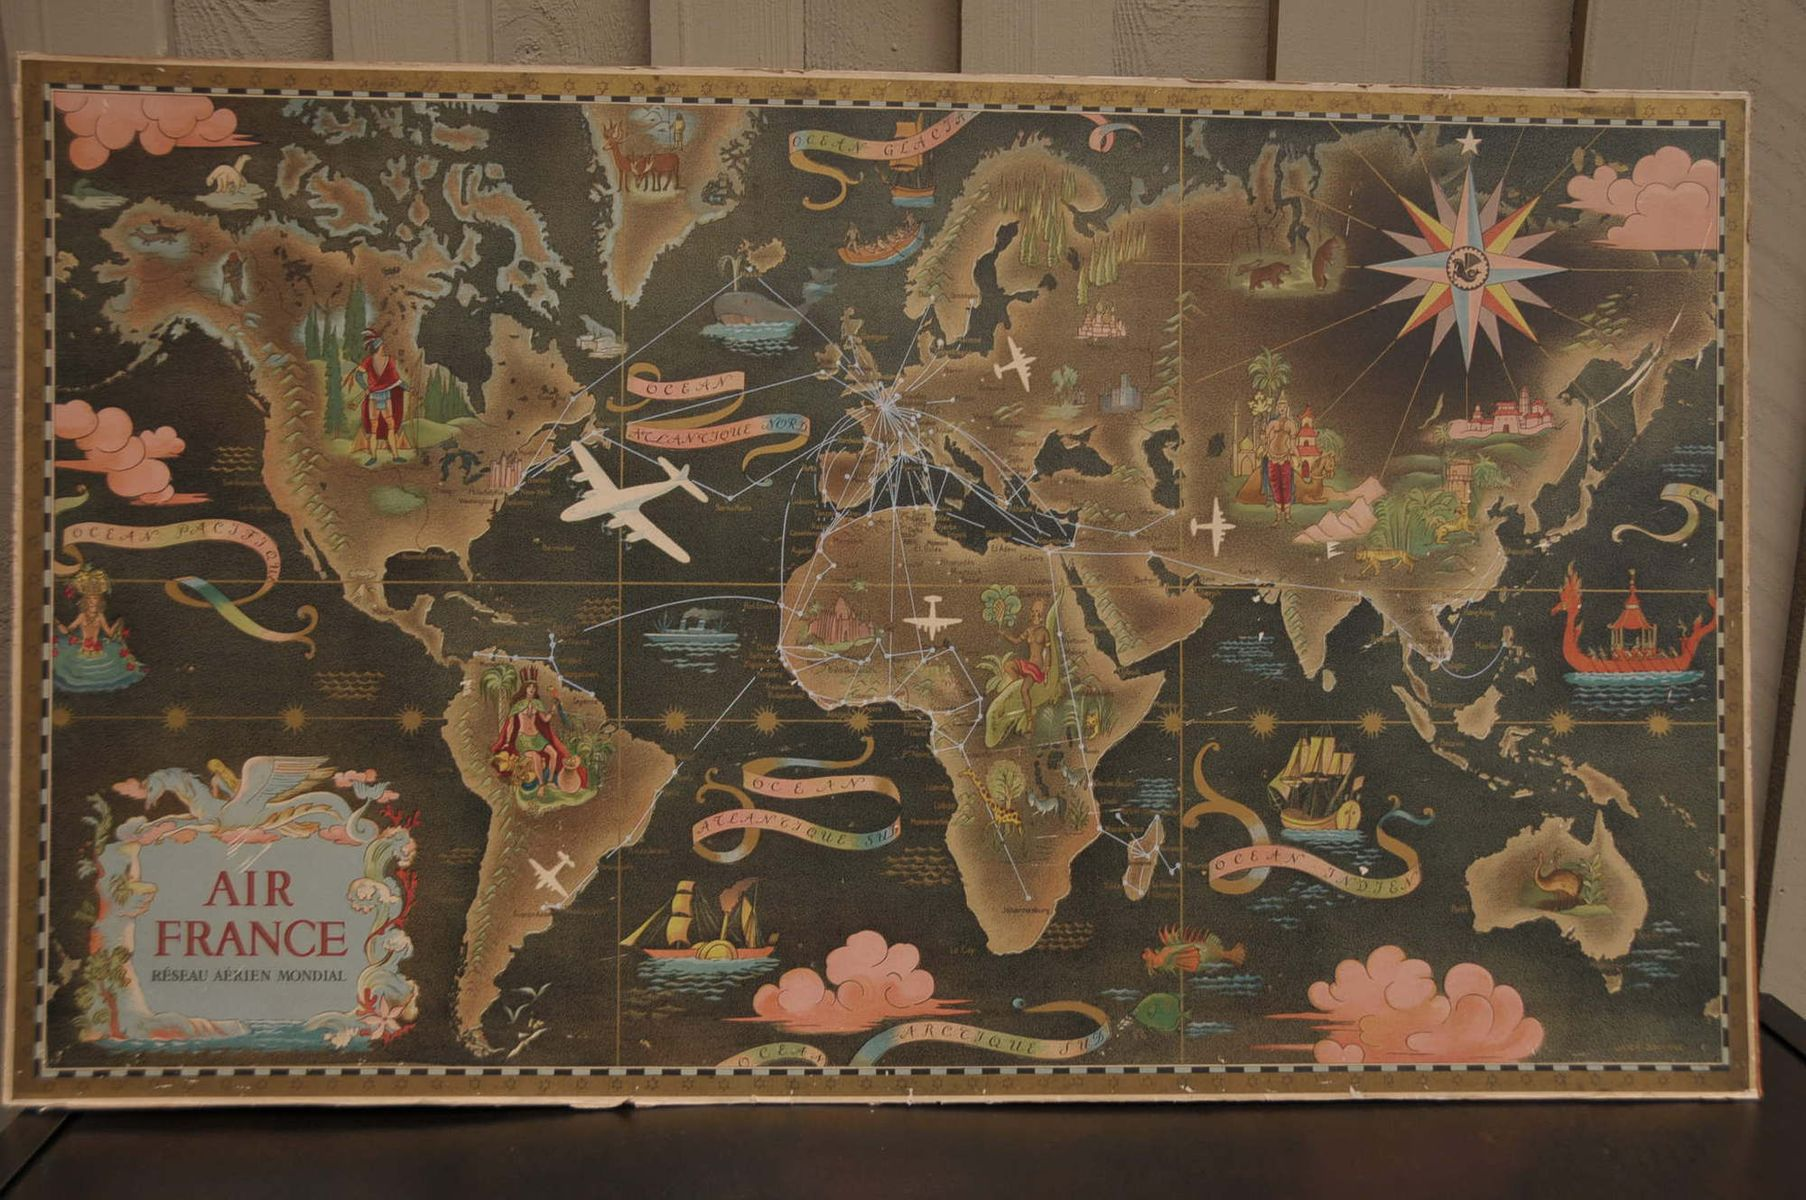 Vintage Old World Map By Air France Plane Company For Sale At Pamono